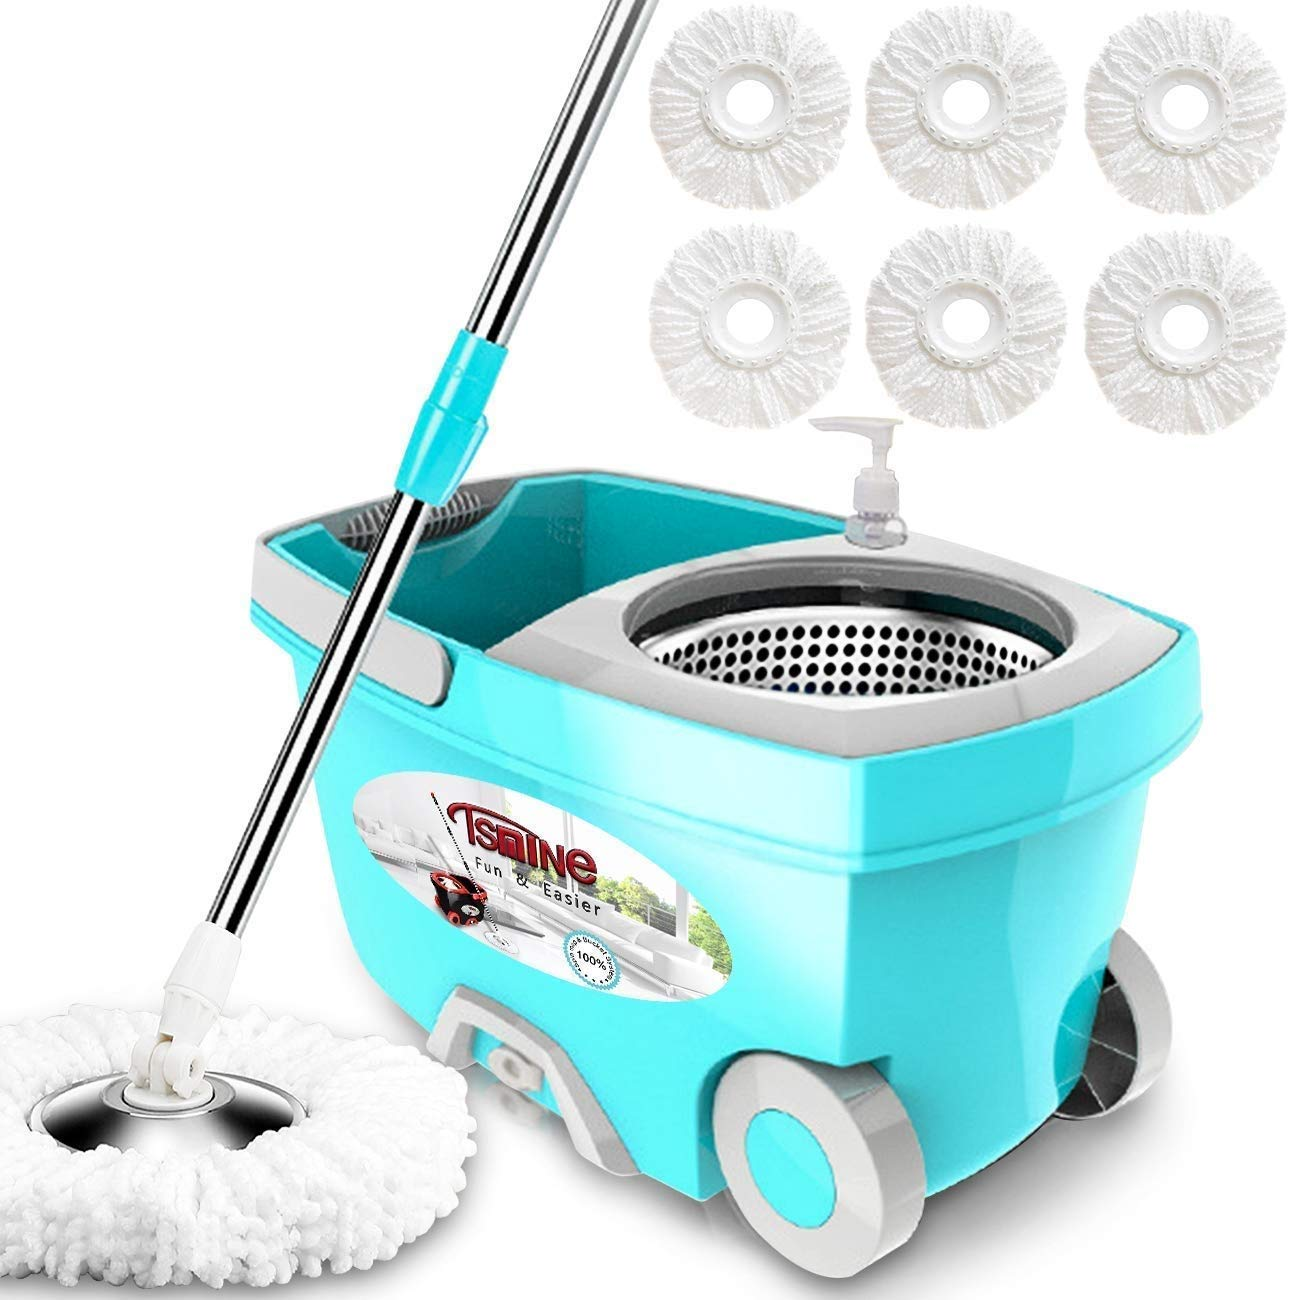 Spin Mop Bucket System - Tsmine Deluxe Stainless Steel Spinning Mop with 61' Silent Extended Handle, 2X Wheels, 6 Microfiber Replacement Head, Drain Outlet, Detergent Dispenser, for Home Cleaning Tsmine Inc Spin Mop Bucket System-1